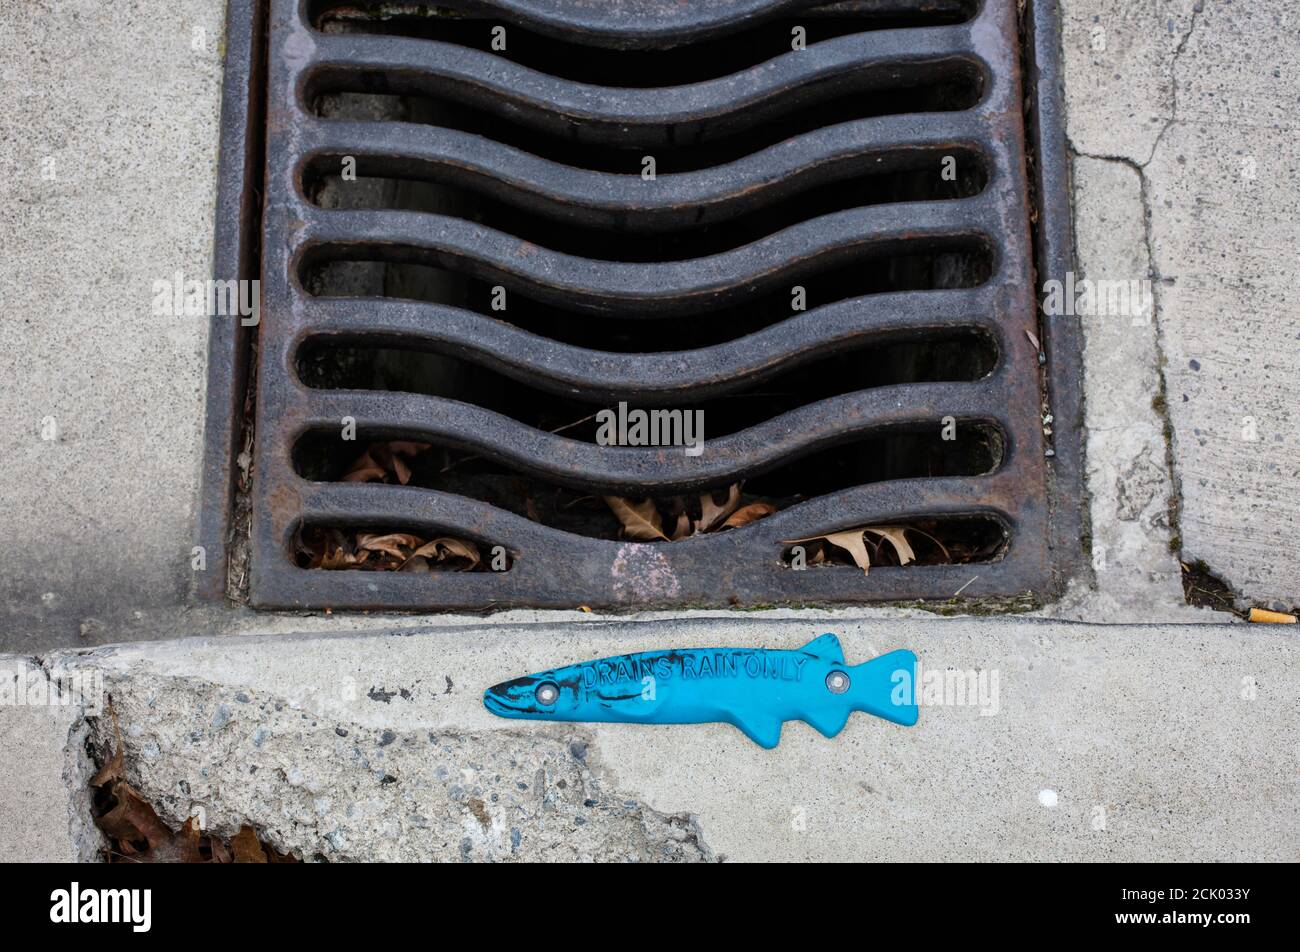 Novel drain warning. For rain-water only - no dumping of household or industrial waste down storm-water drains. Protect fish life. Stock Photo